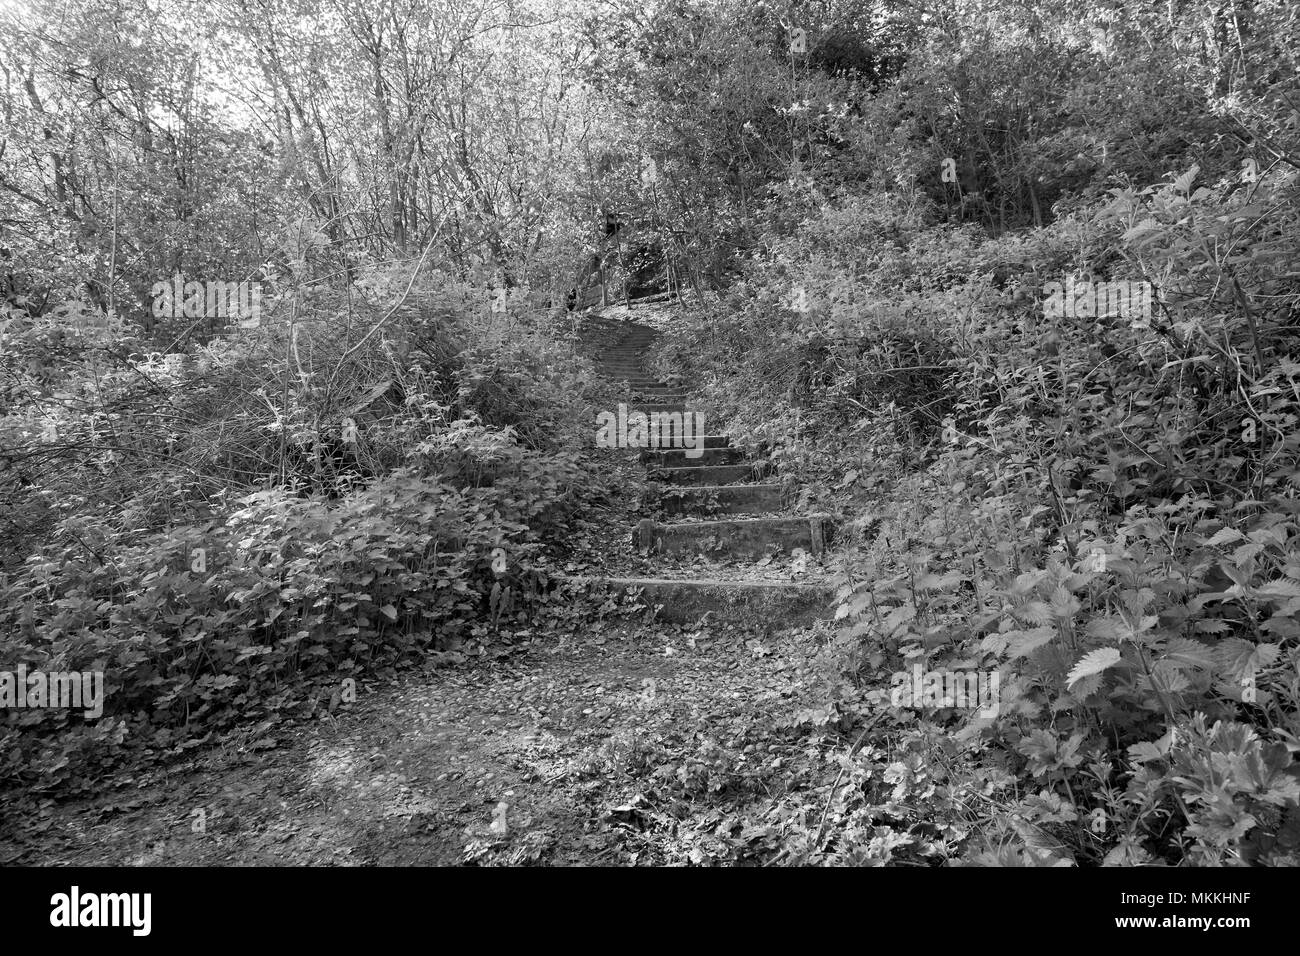 A stepped path in woodland - Stock Image